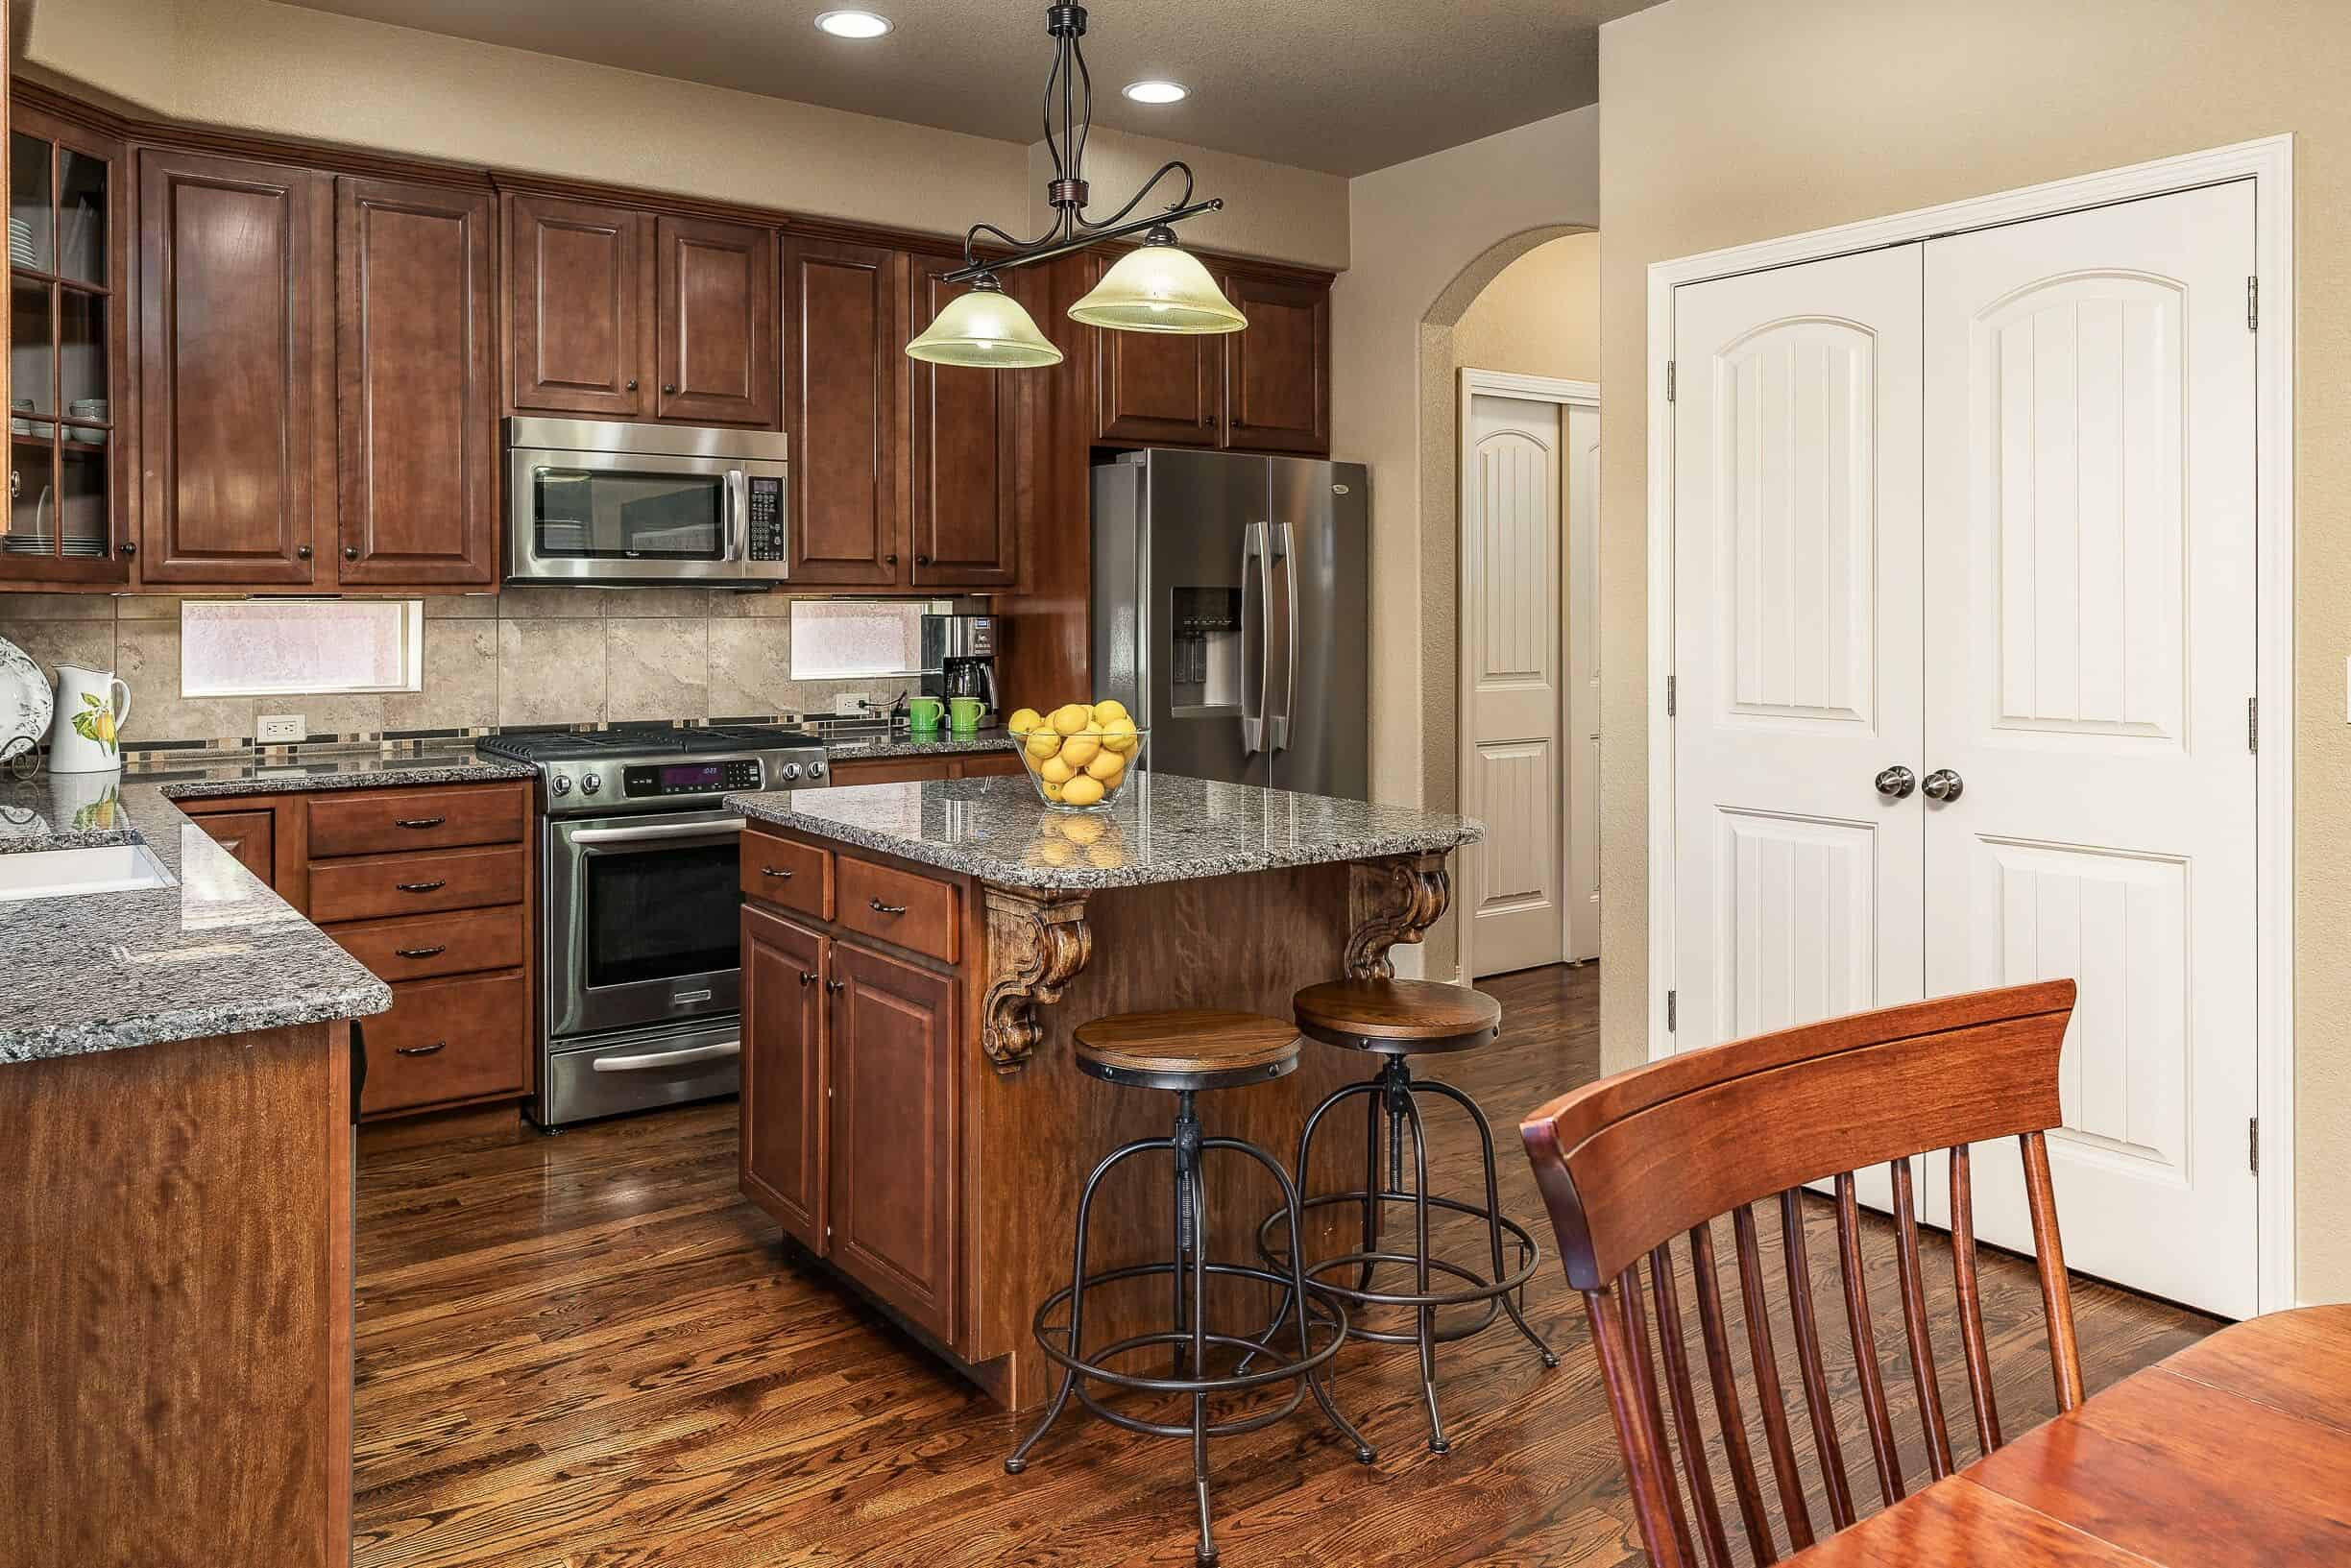 Gourmet Island Kitchen and Pantry